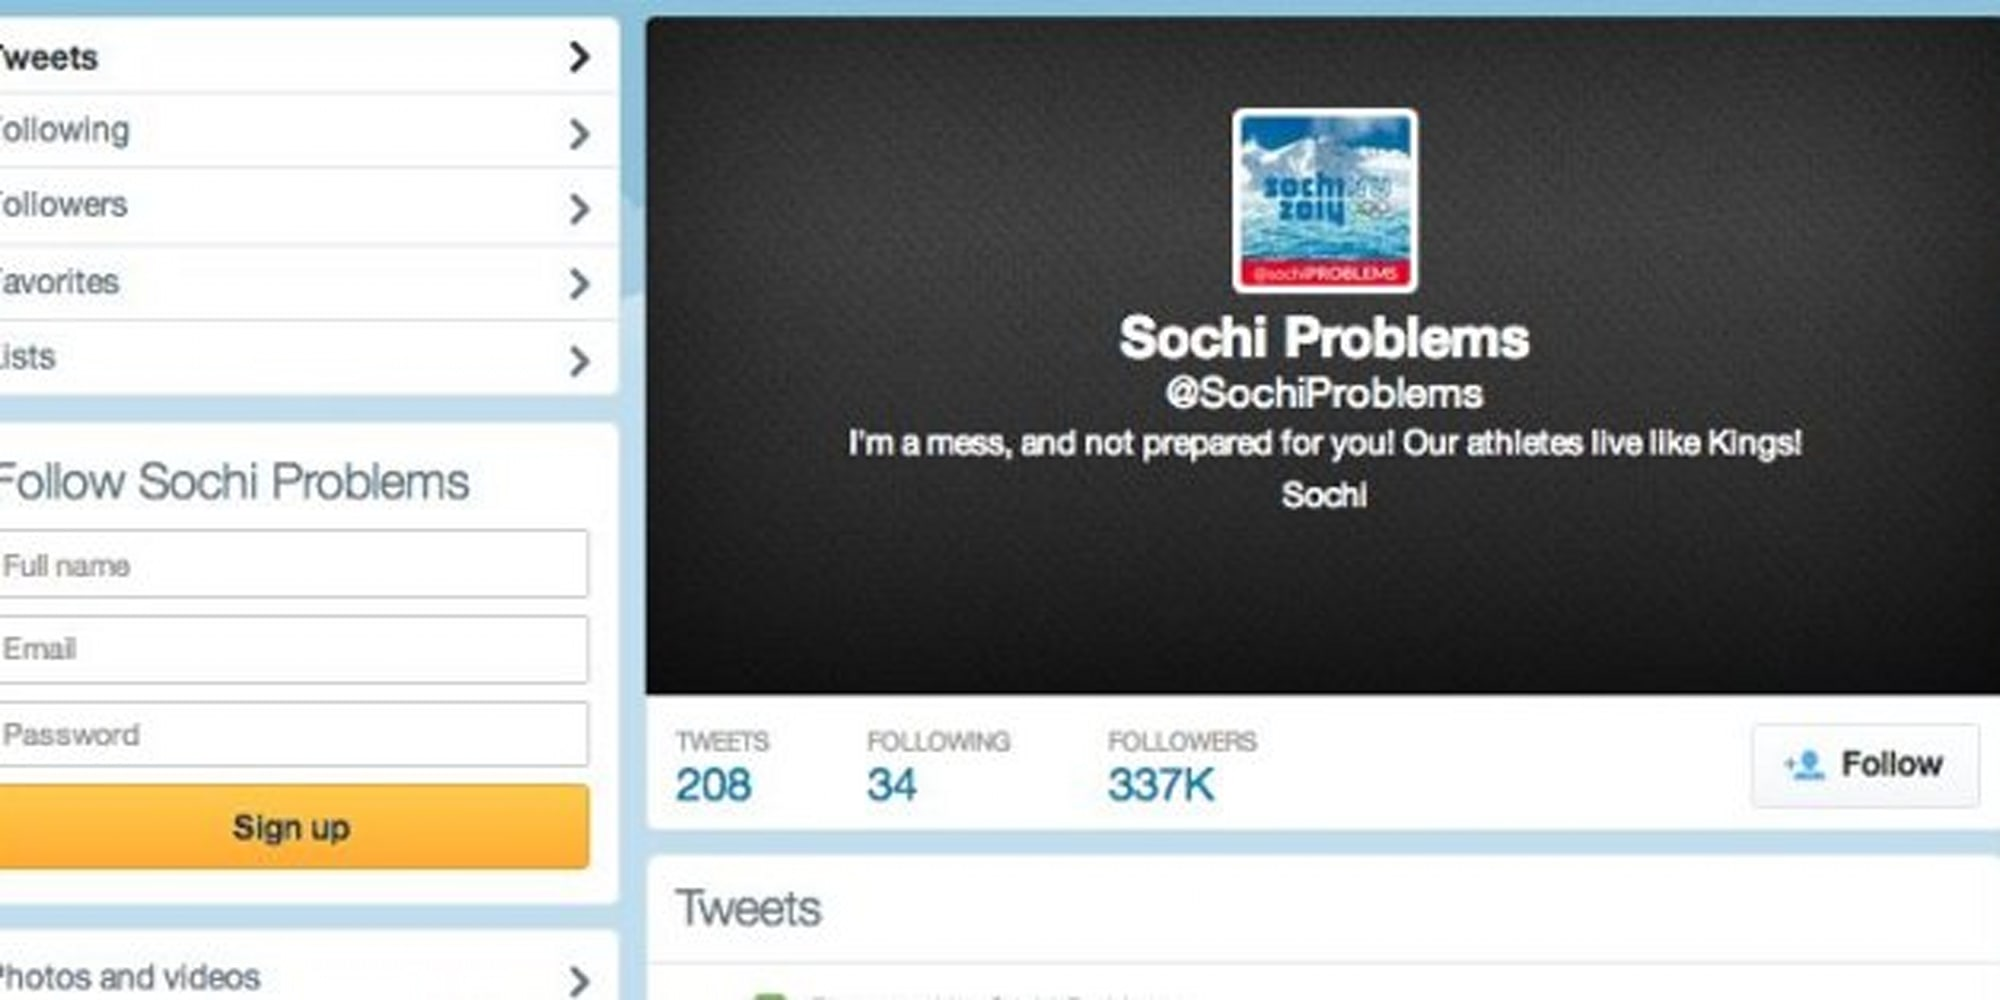 Sochi Problems Alexander Broad Toronto Journalism Student - Sochi problems tweets